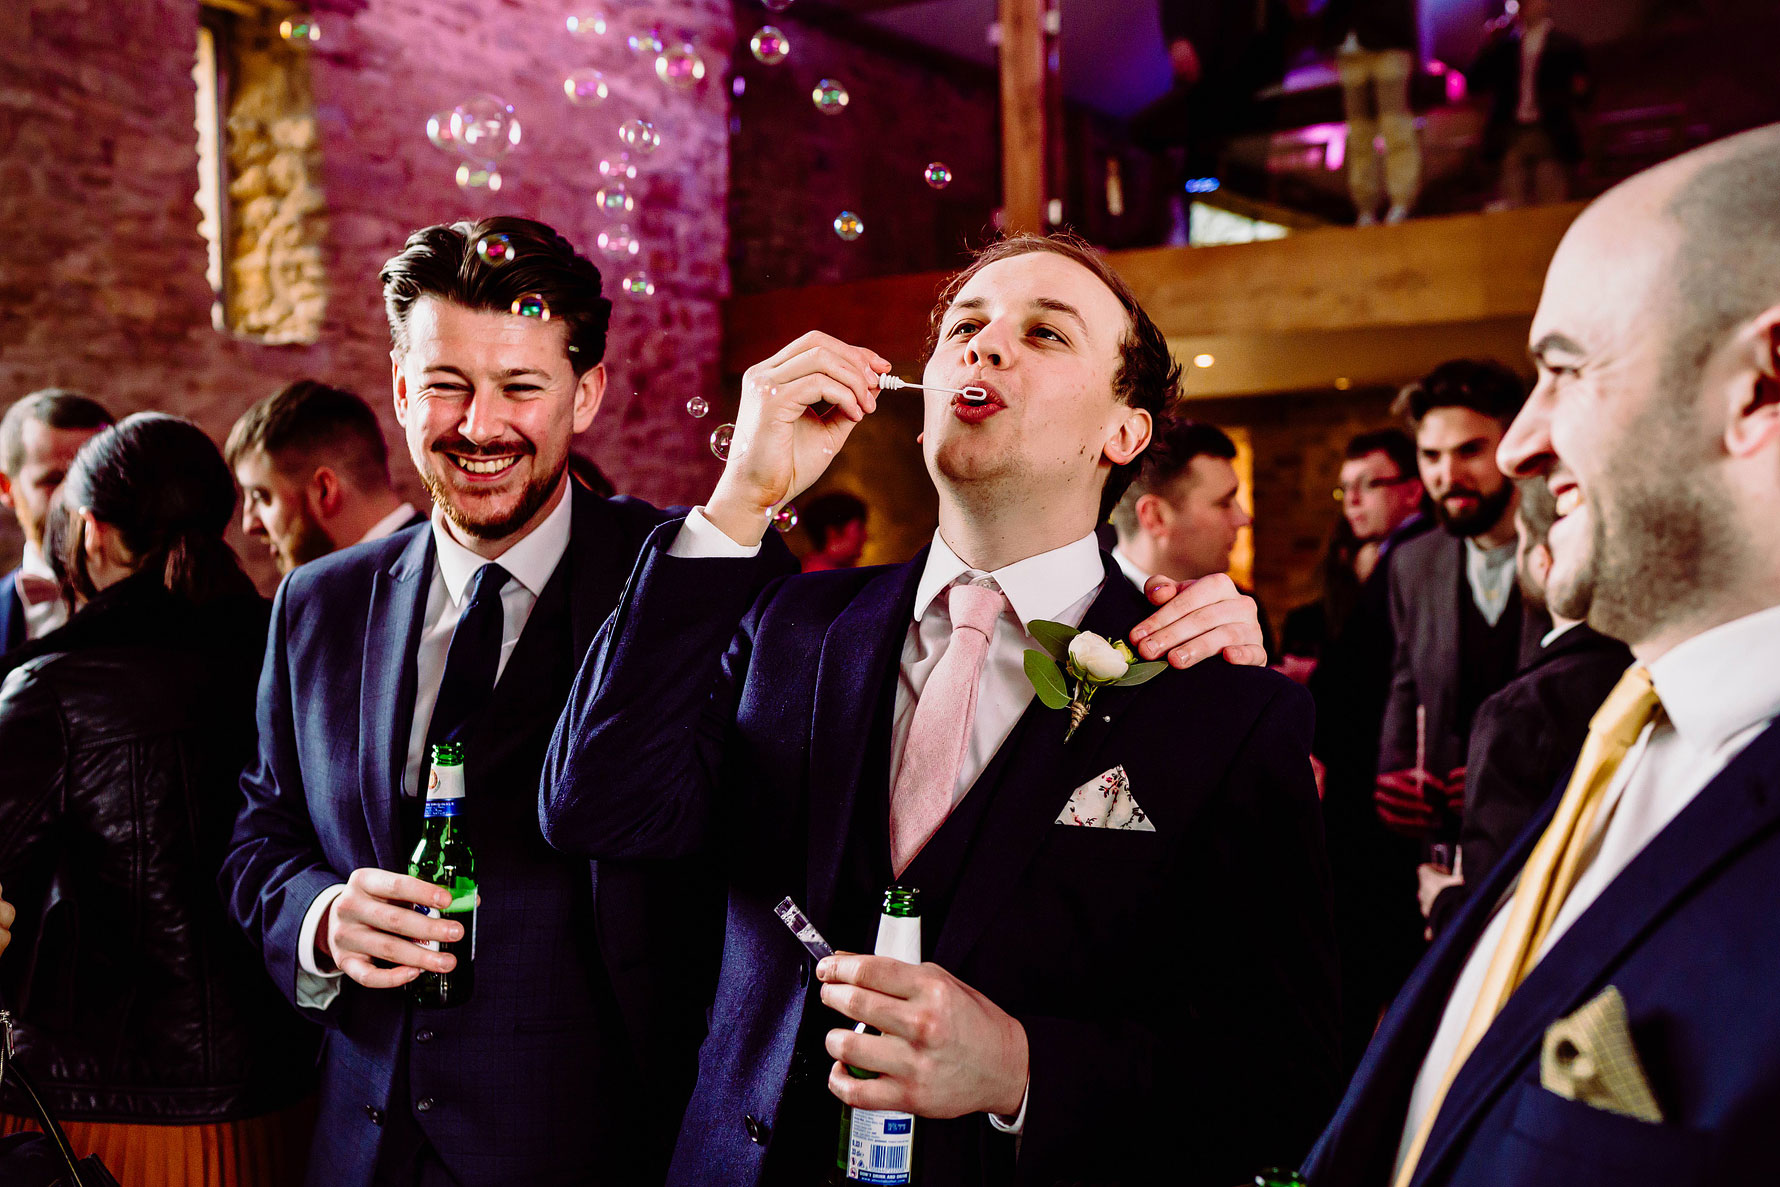 guests blow bubbles at a wedding